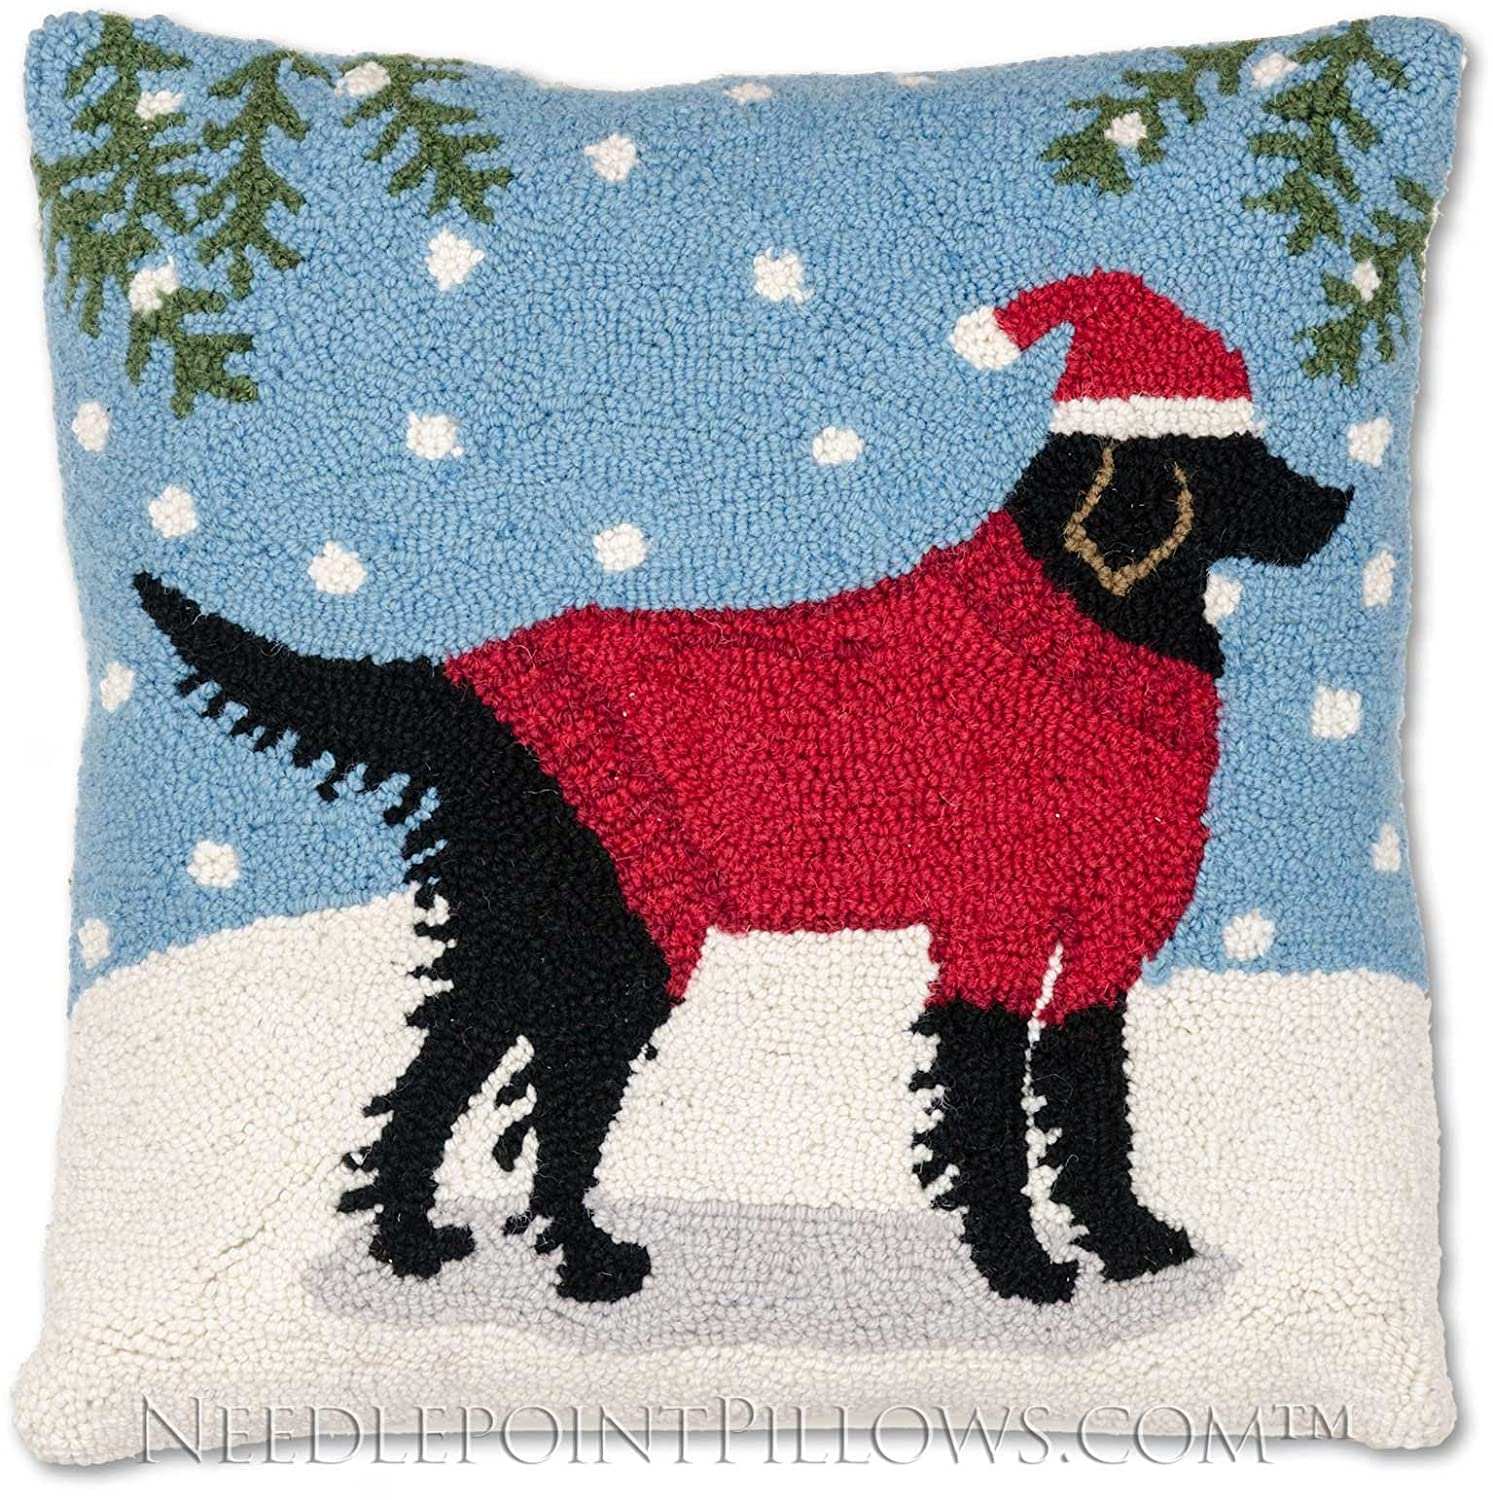 Wool Hooked Holiday Decorative Skiing Christmas Throw Pillow